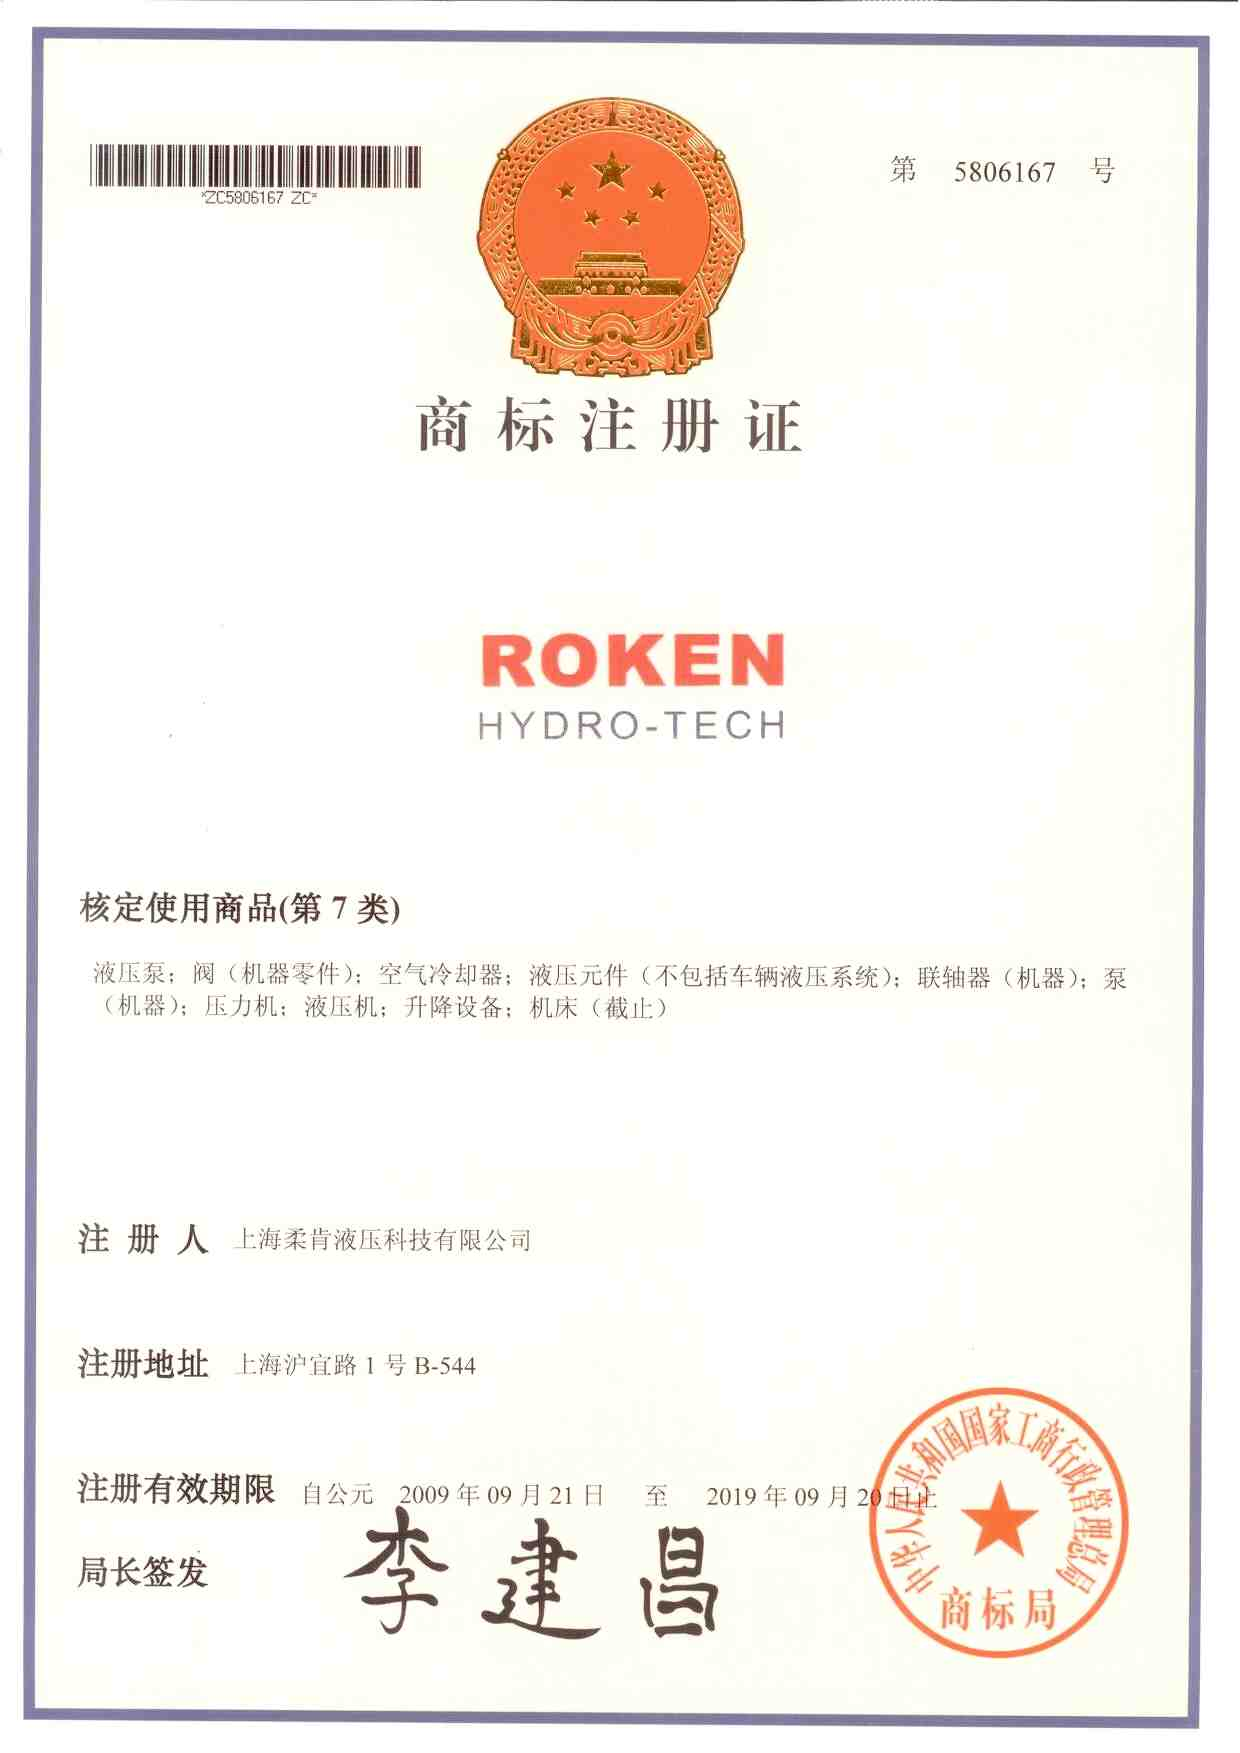 BRAND REGISTRATION for ROKEN HYDRO- TECH